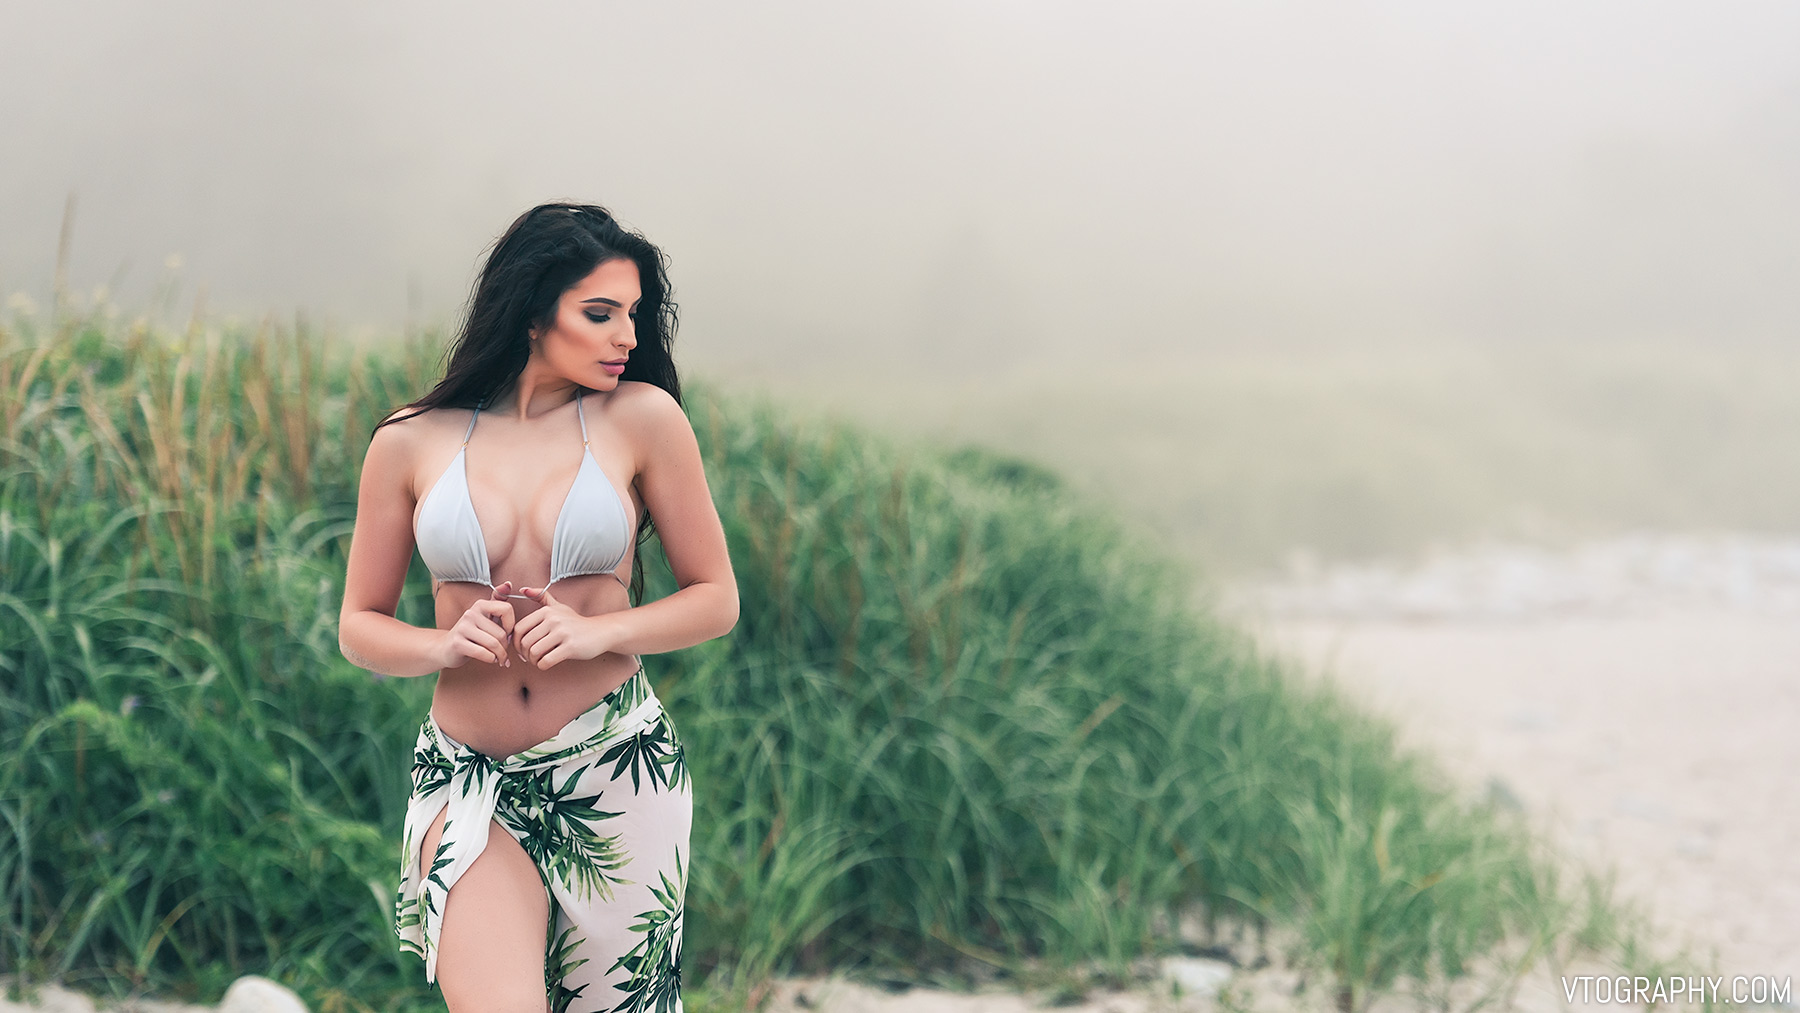 Foggy photo shoot with model Brittany